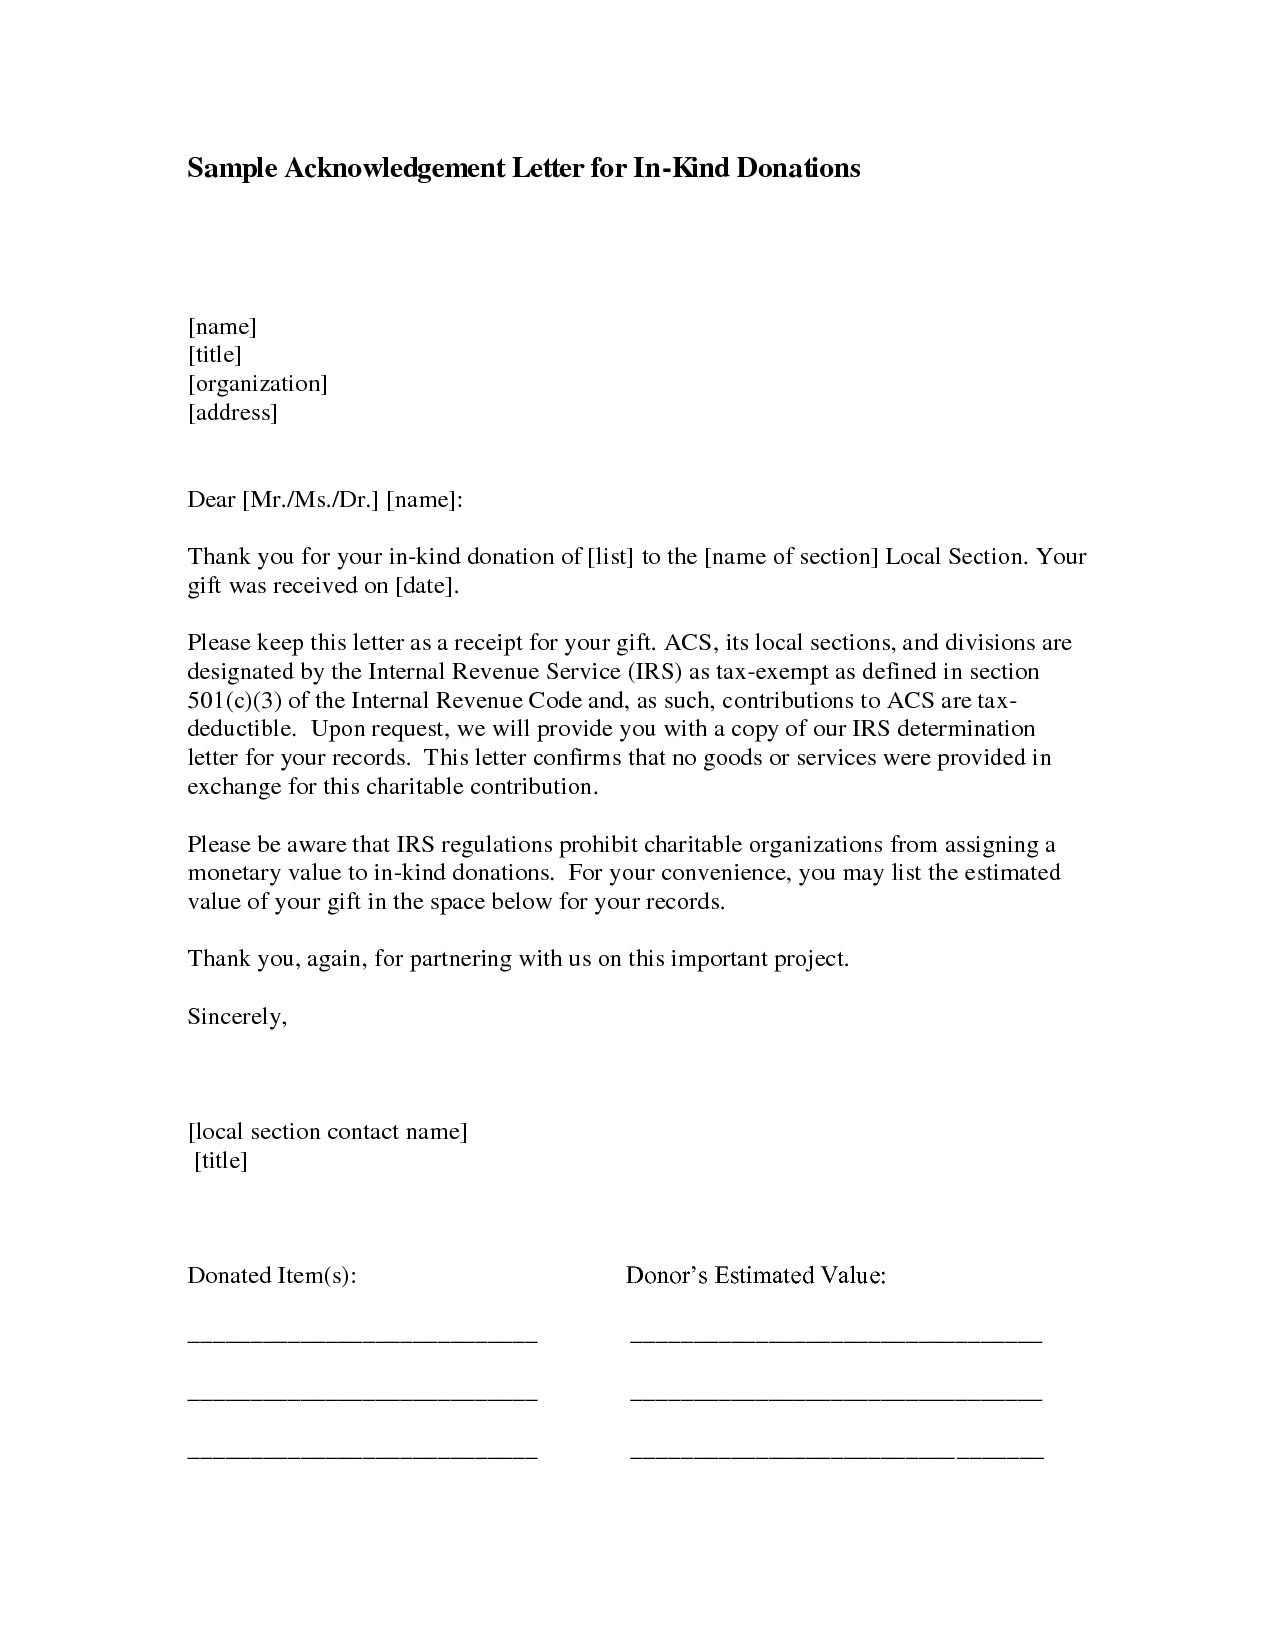 acknowledgement of donation letter template example-In kind donation acknowledgement include photos 9-t